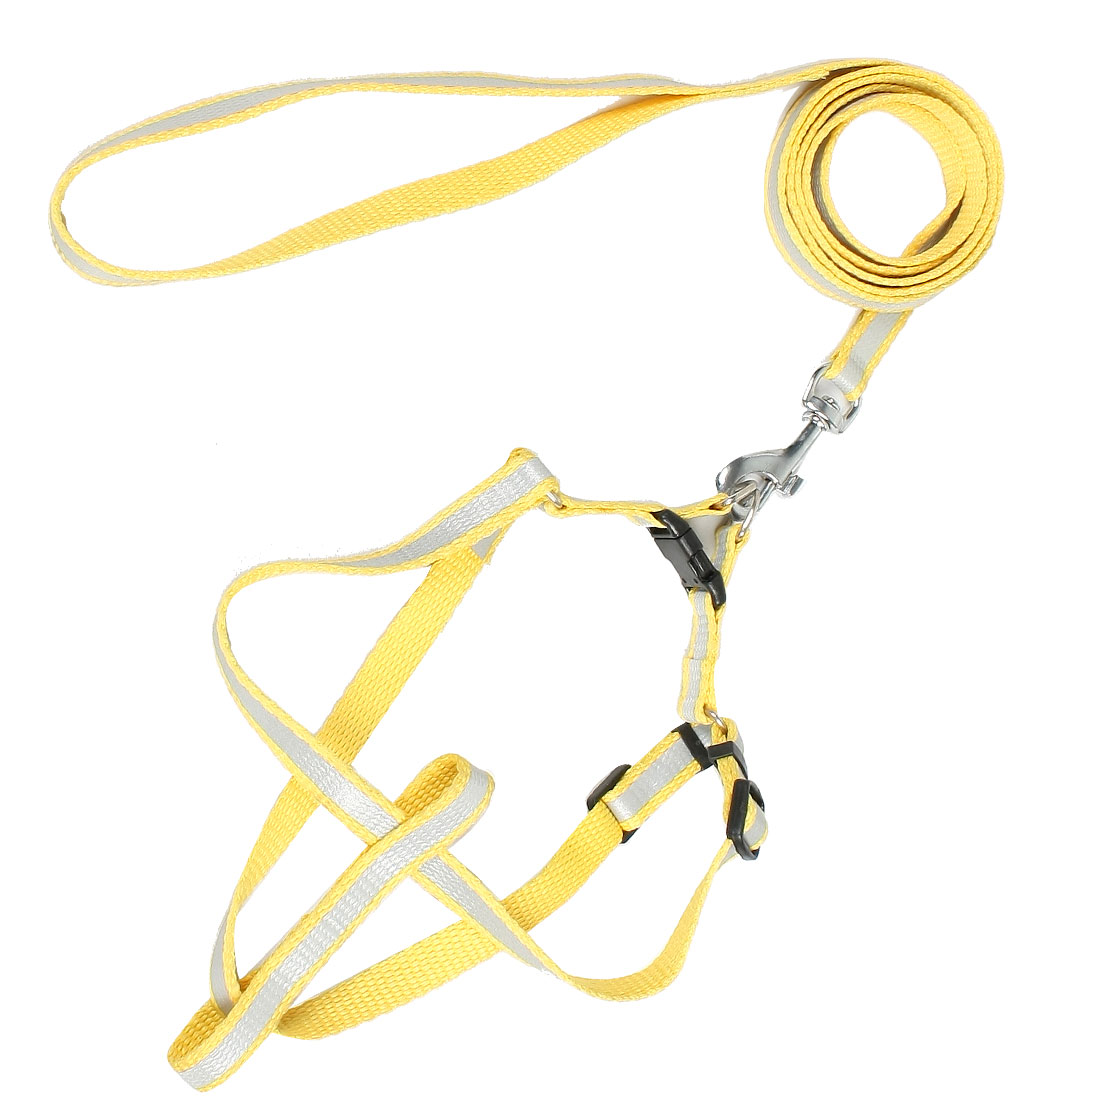 Yellow Nylon Rope Pet Dog Fluorescent Halter Harness Lead Leash 1.2M